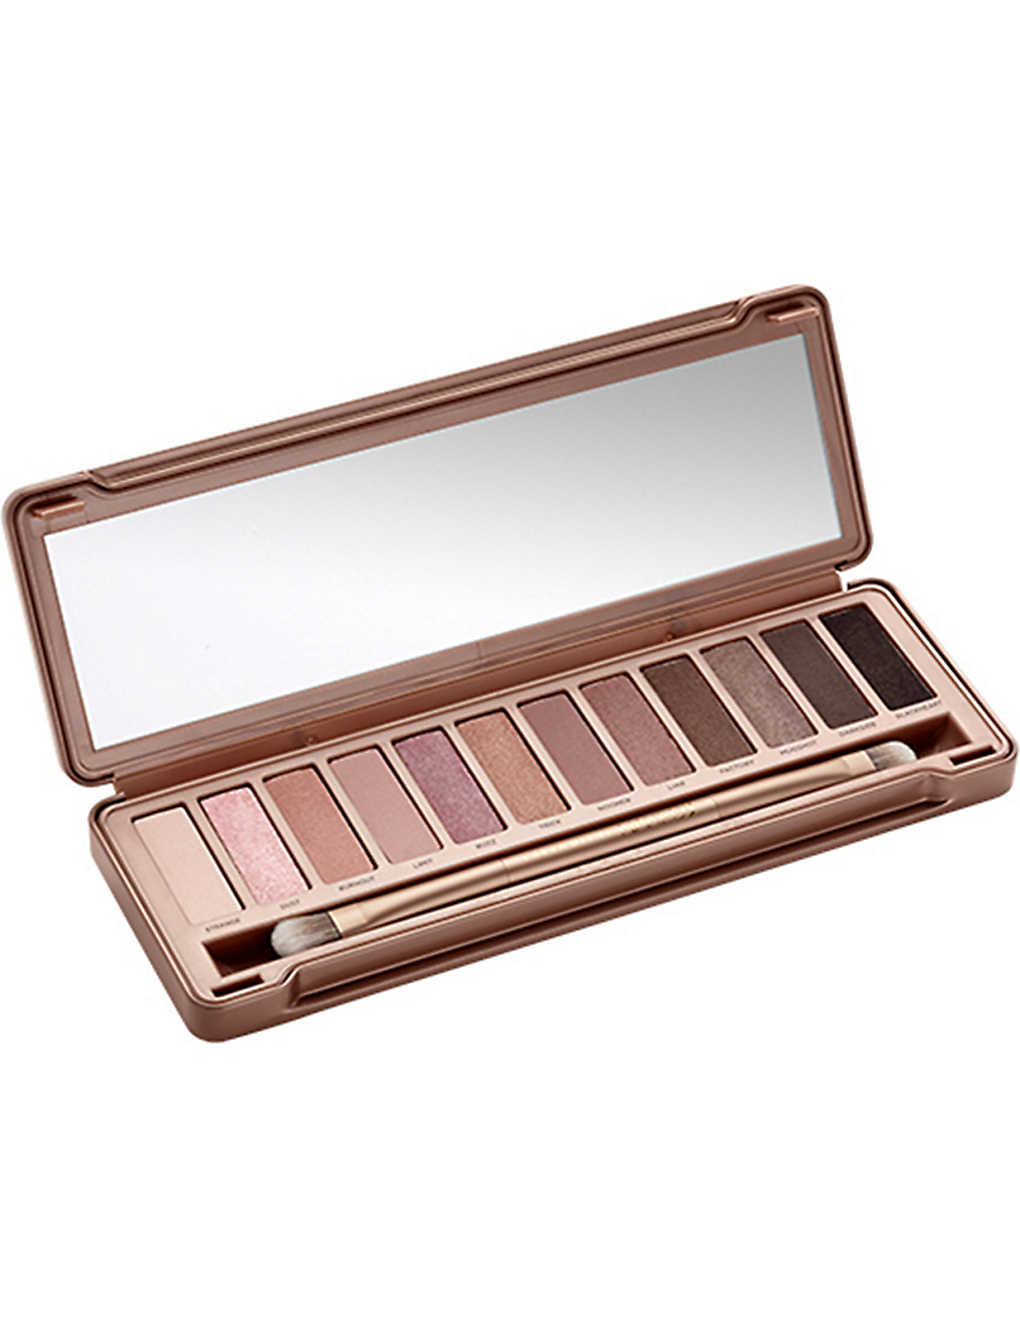 URBAN DECAY: Naked 3 Eyeshadow Palette